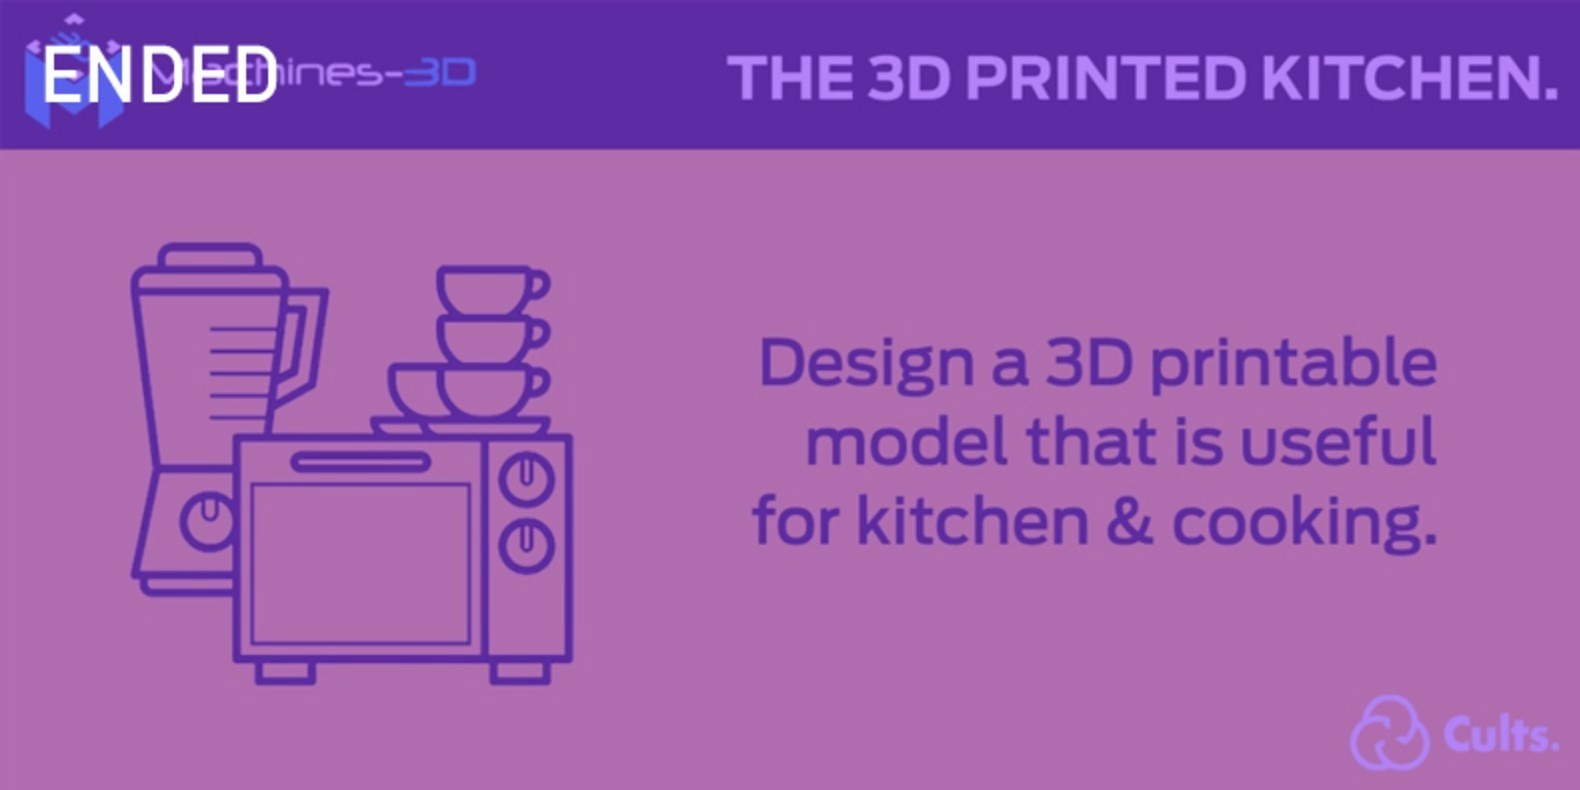 The challenge of design and 3D printing about the kitchen.